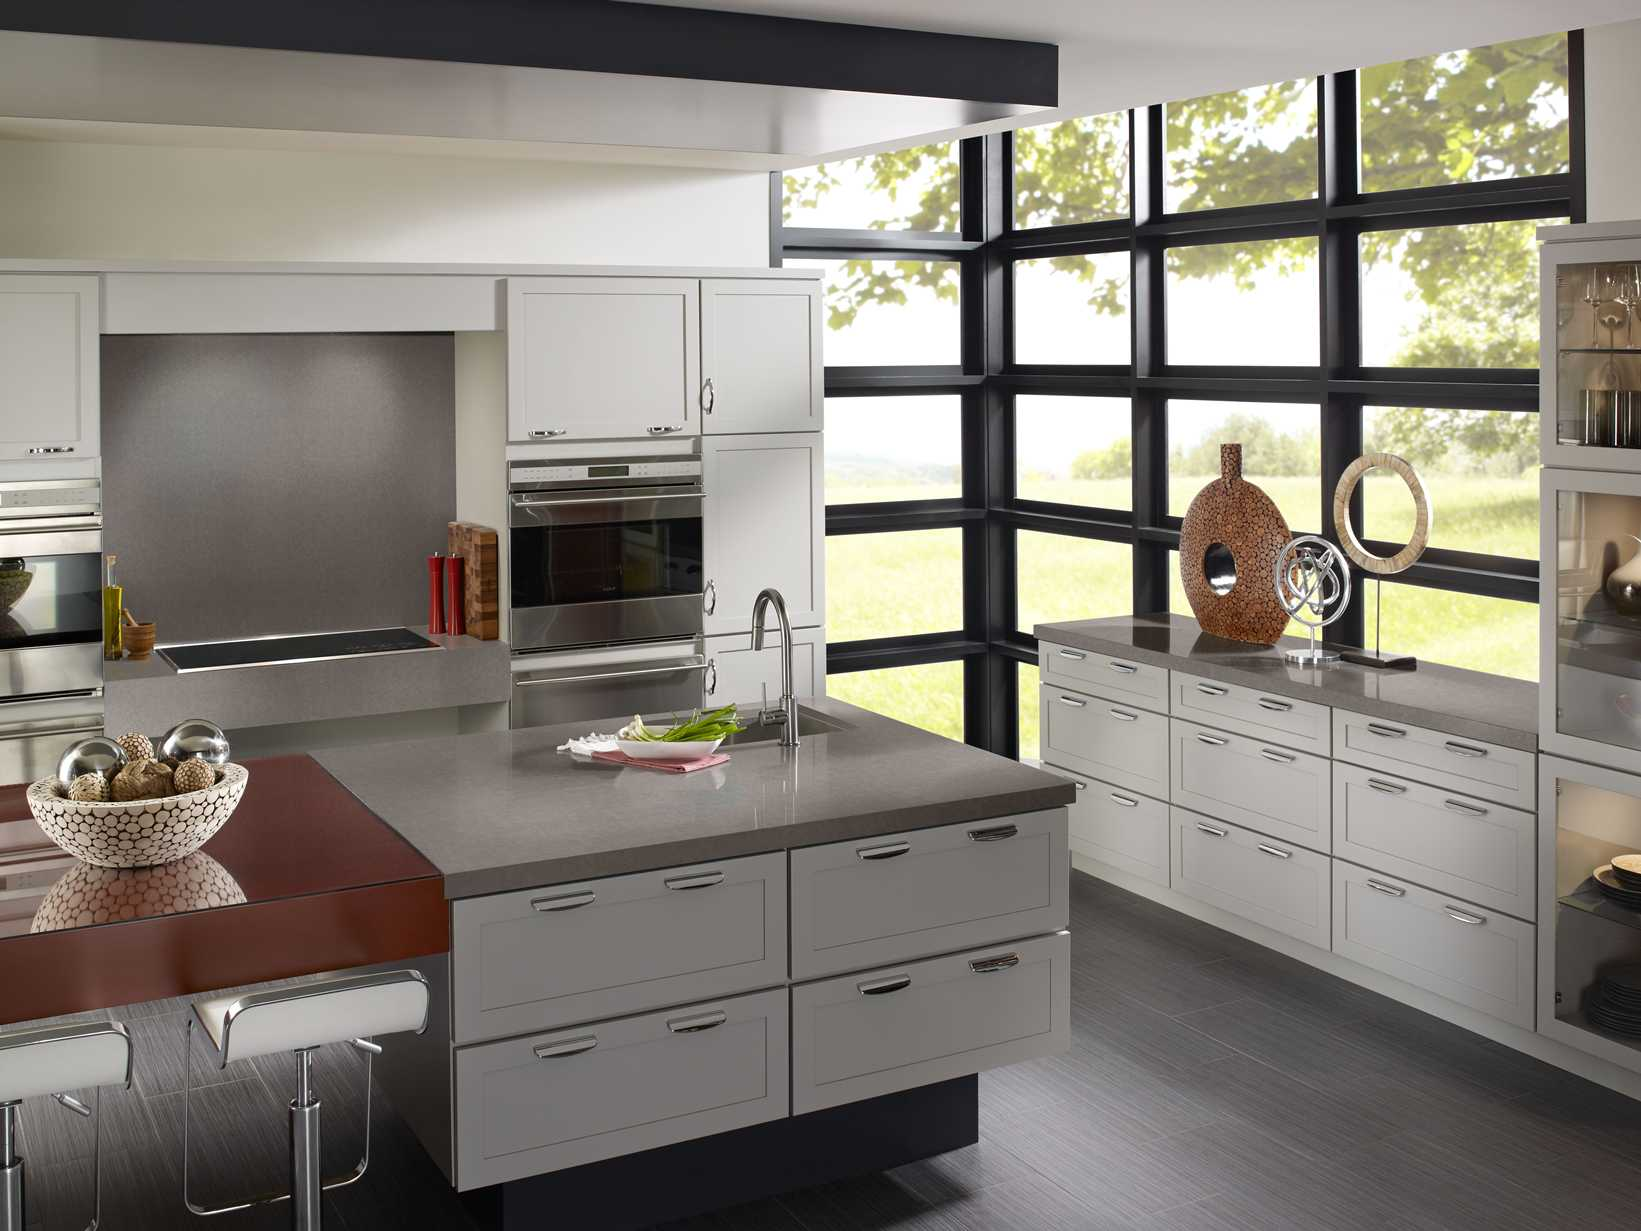 Forest Green Kitchen Cabinets